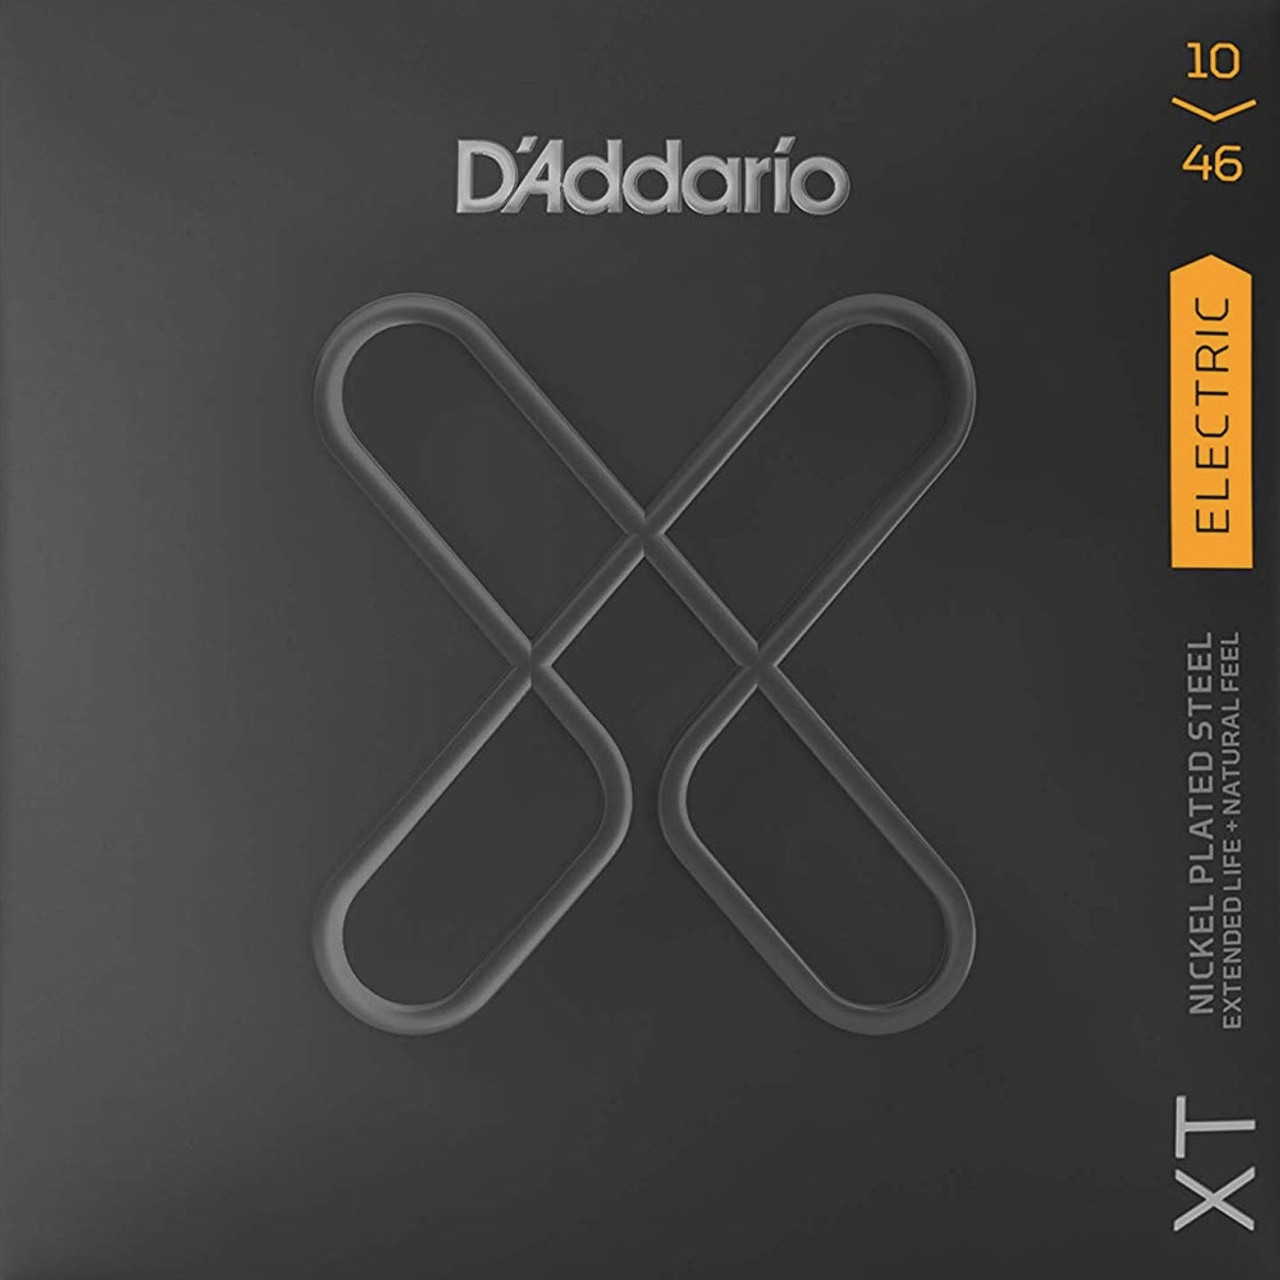 D'addario XT Electric Guitar Strings